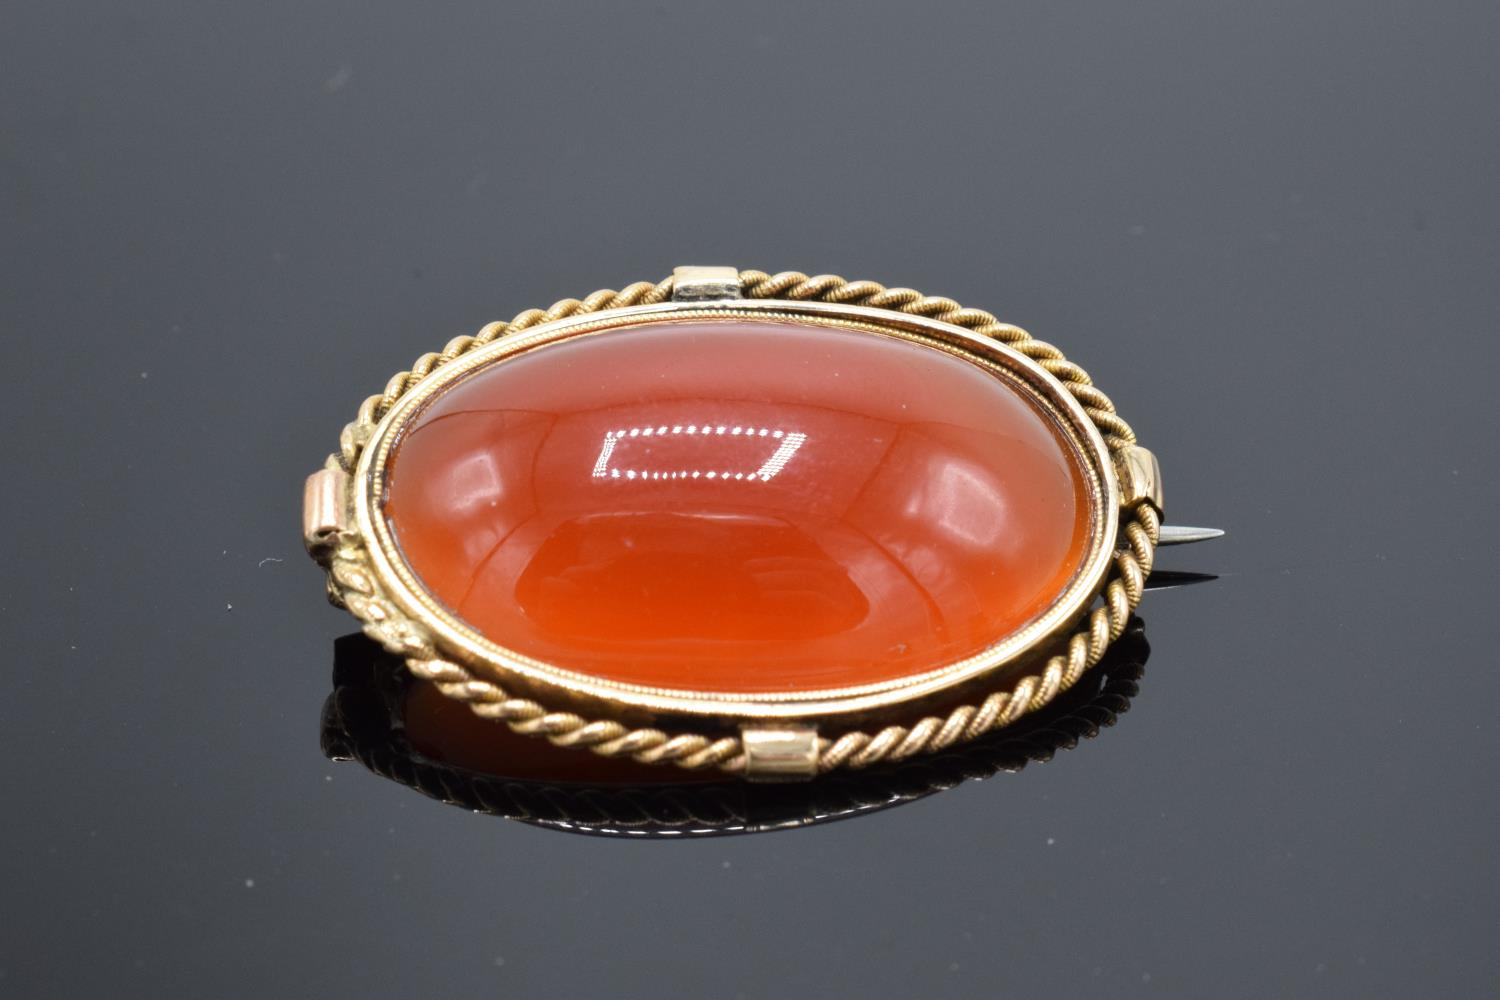 A collection of items to include a 15ct Victorian carnelian brooch (tested as 15ct) (gross weight - Image 4 of 6